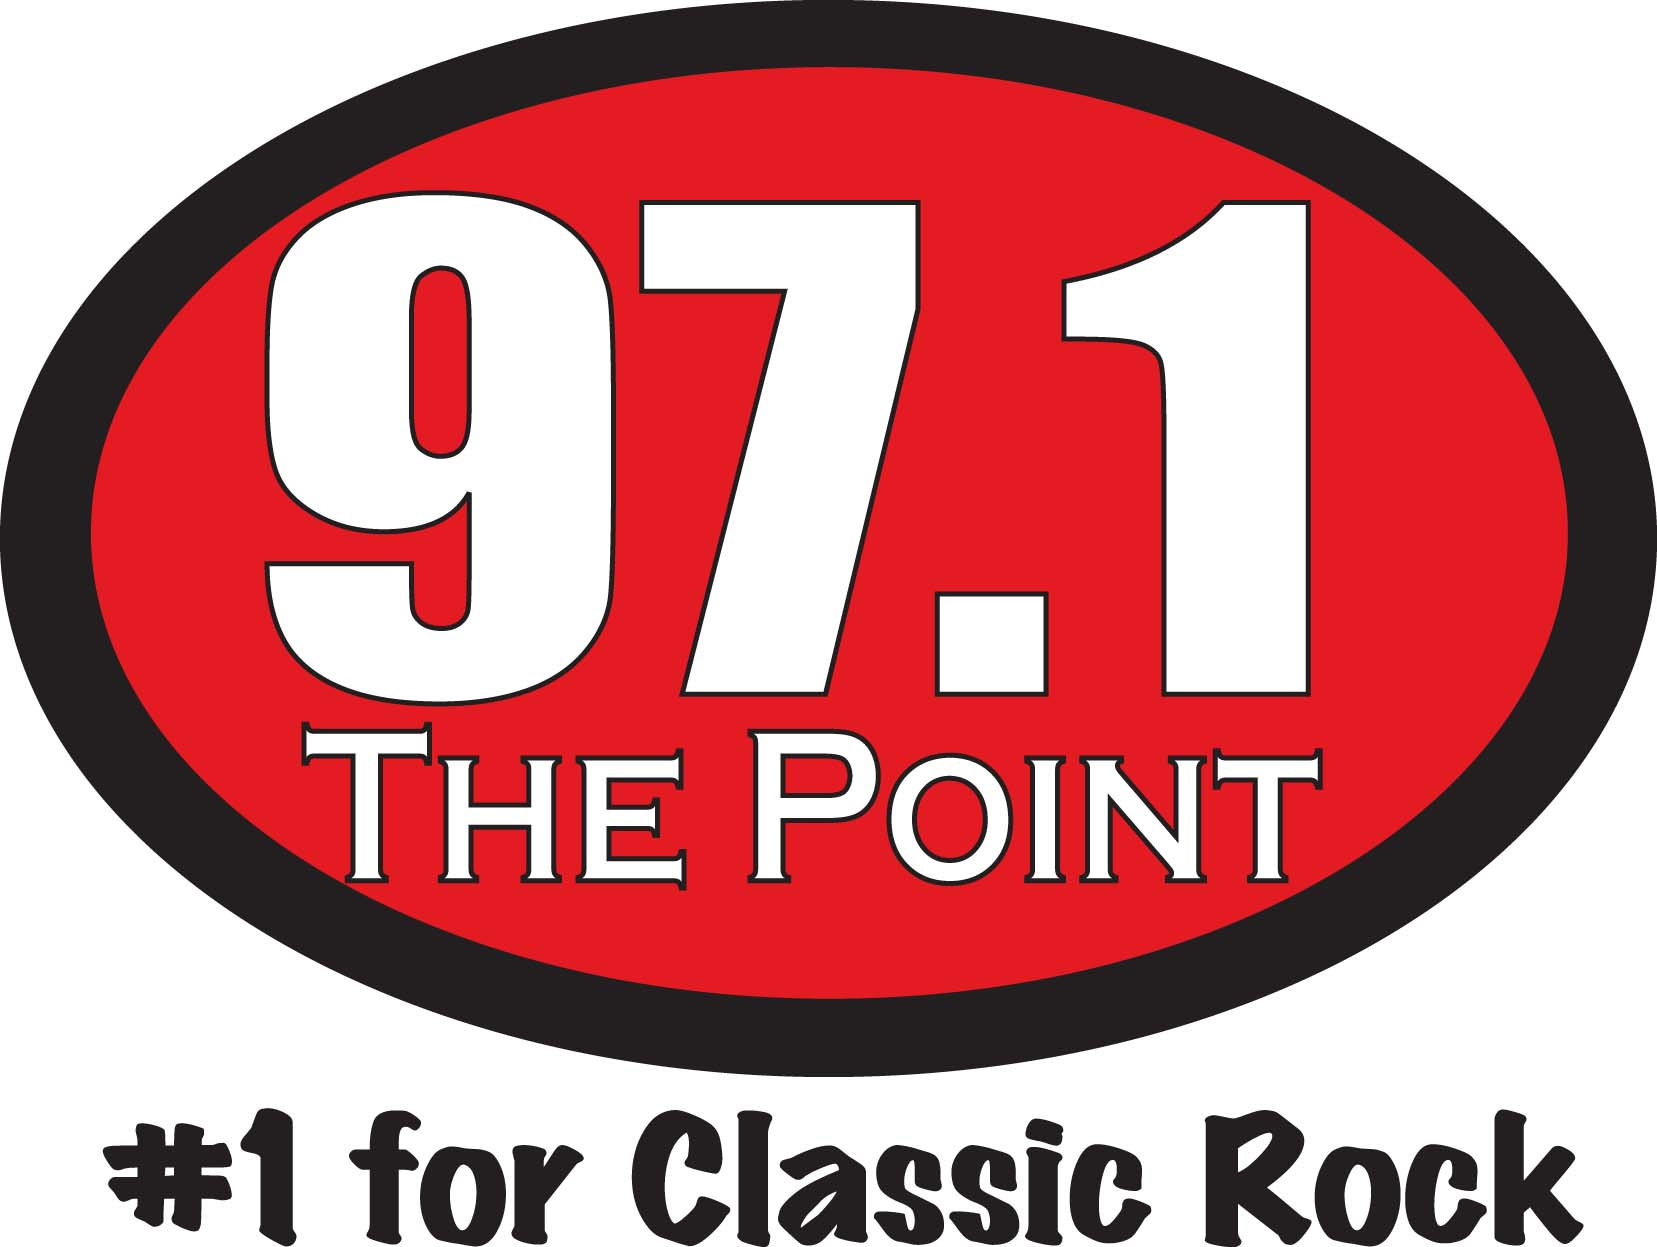 POINT LOGO classic rock 300 dpi.jpg